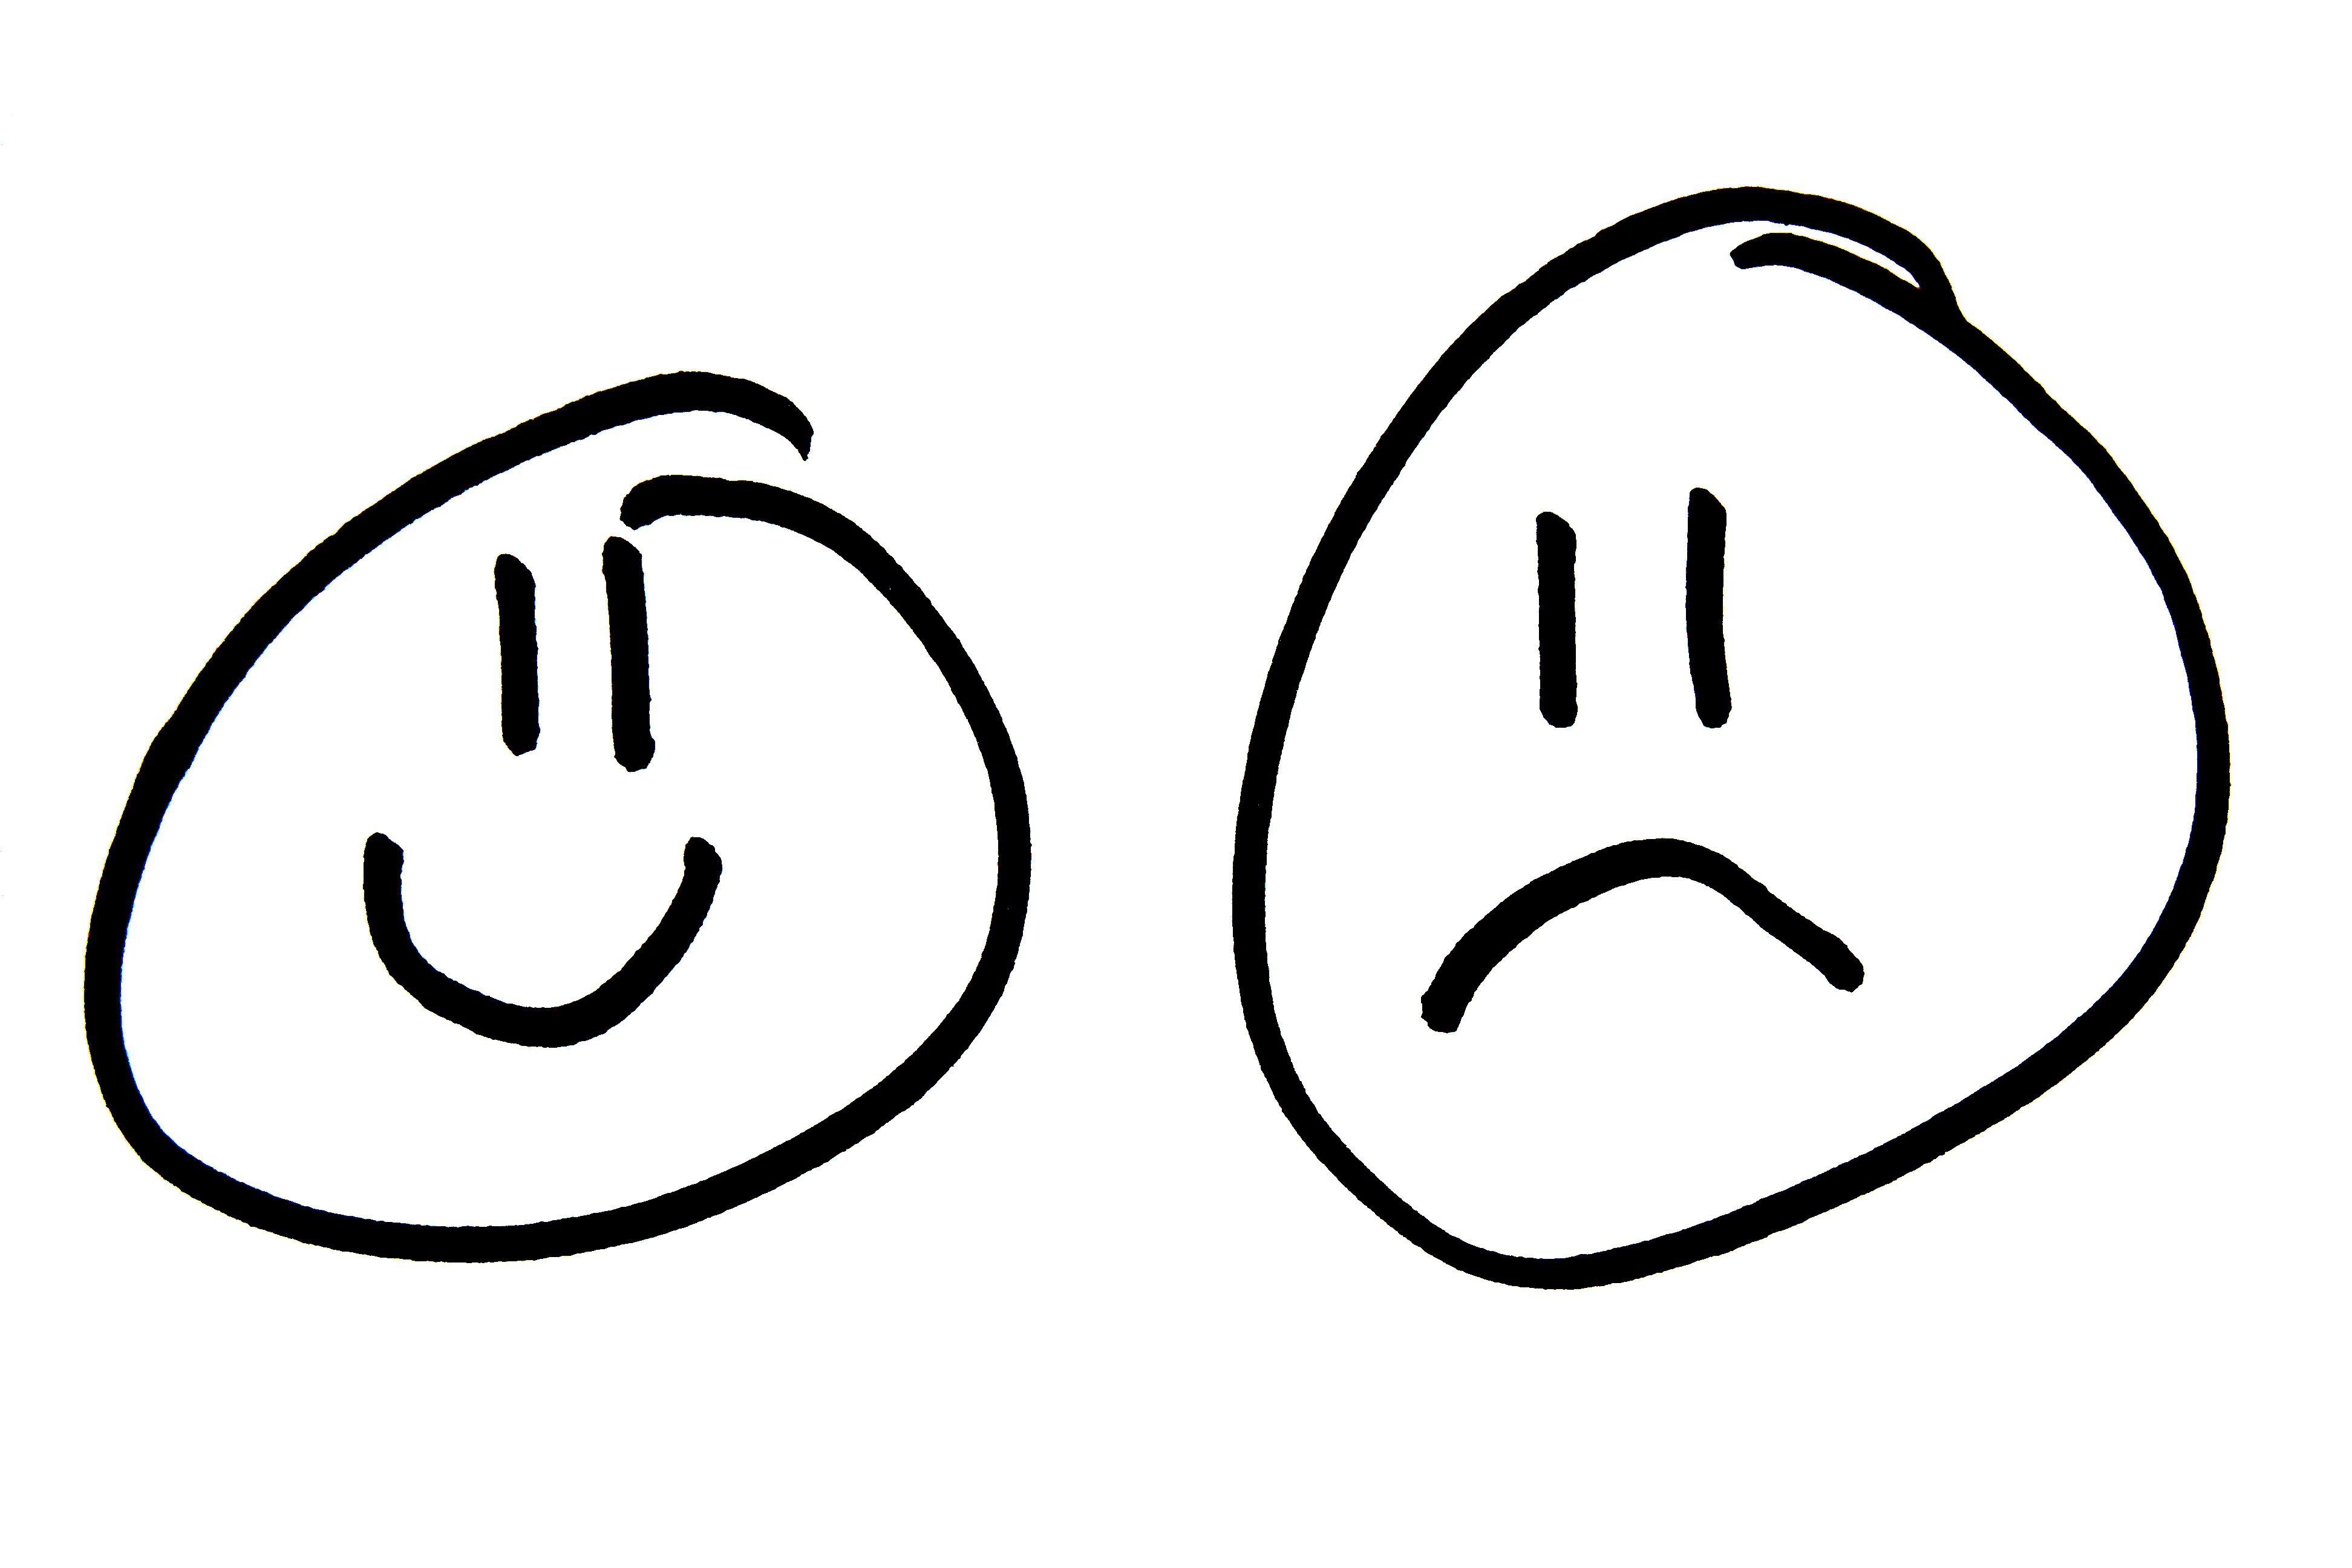 3888x2592 Smiley Face Black And White Smiley Face Black And White Hand Drawn